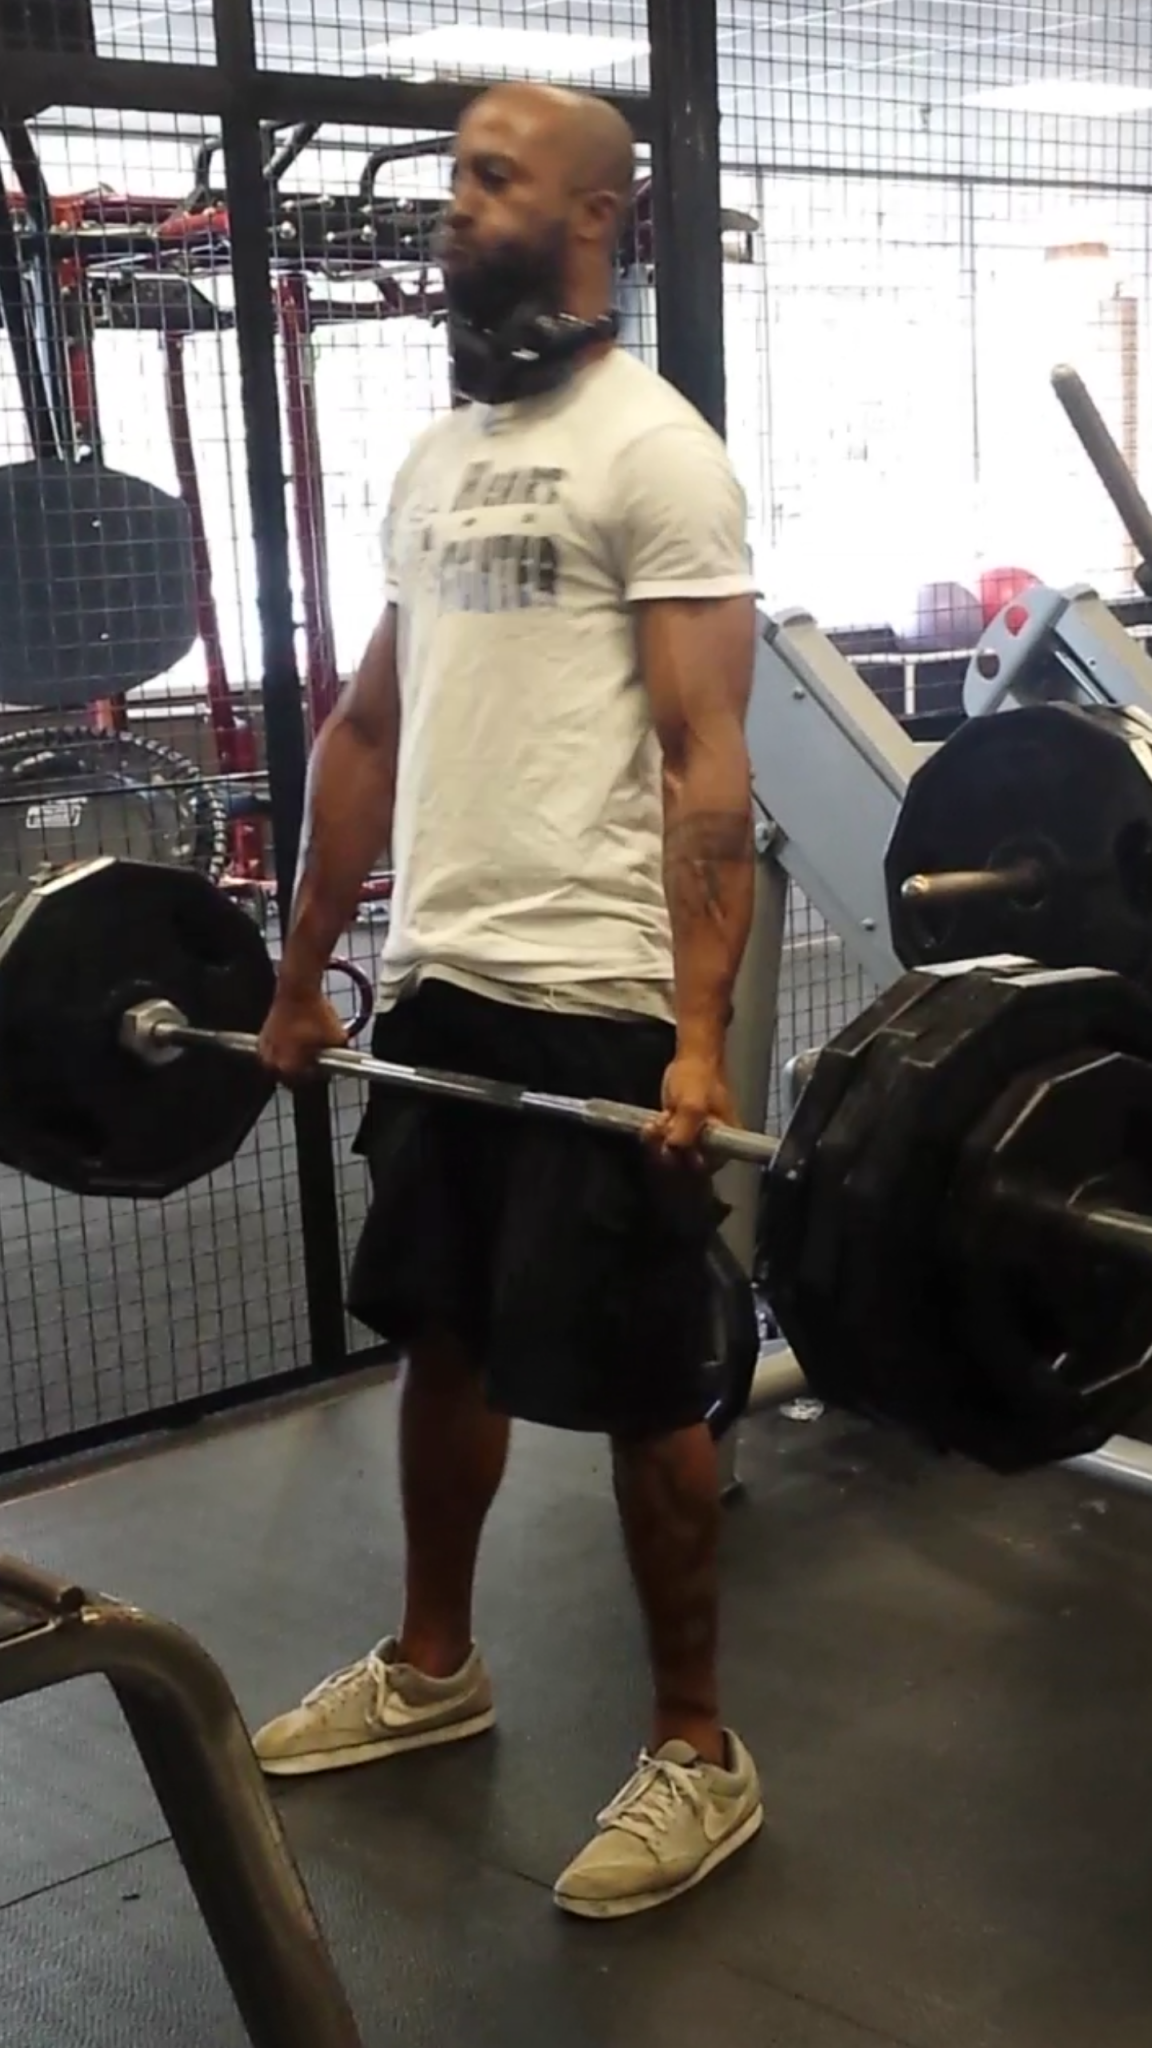 Almost-Max Deadlift Anaerobic Workout of the Week